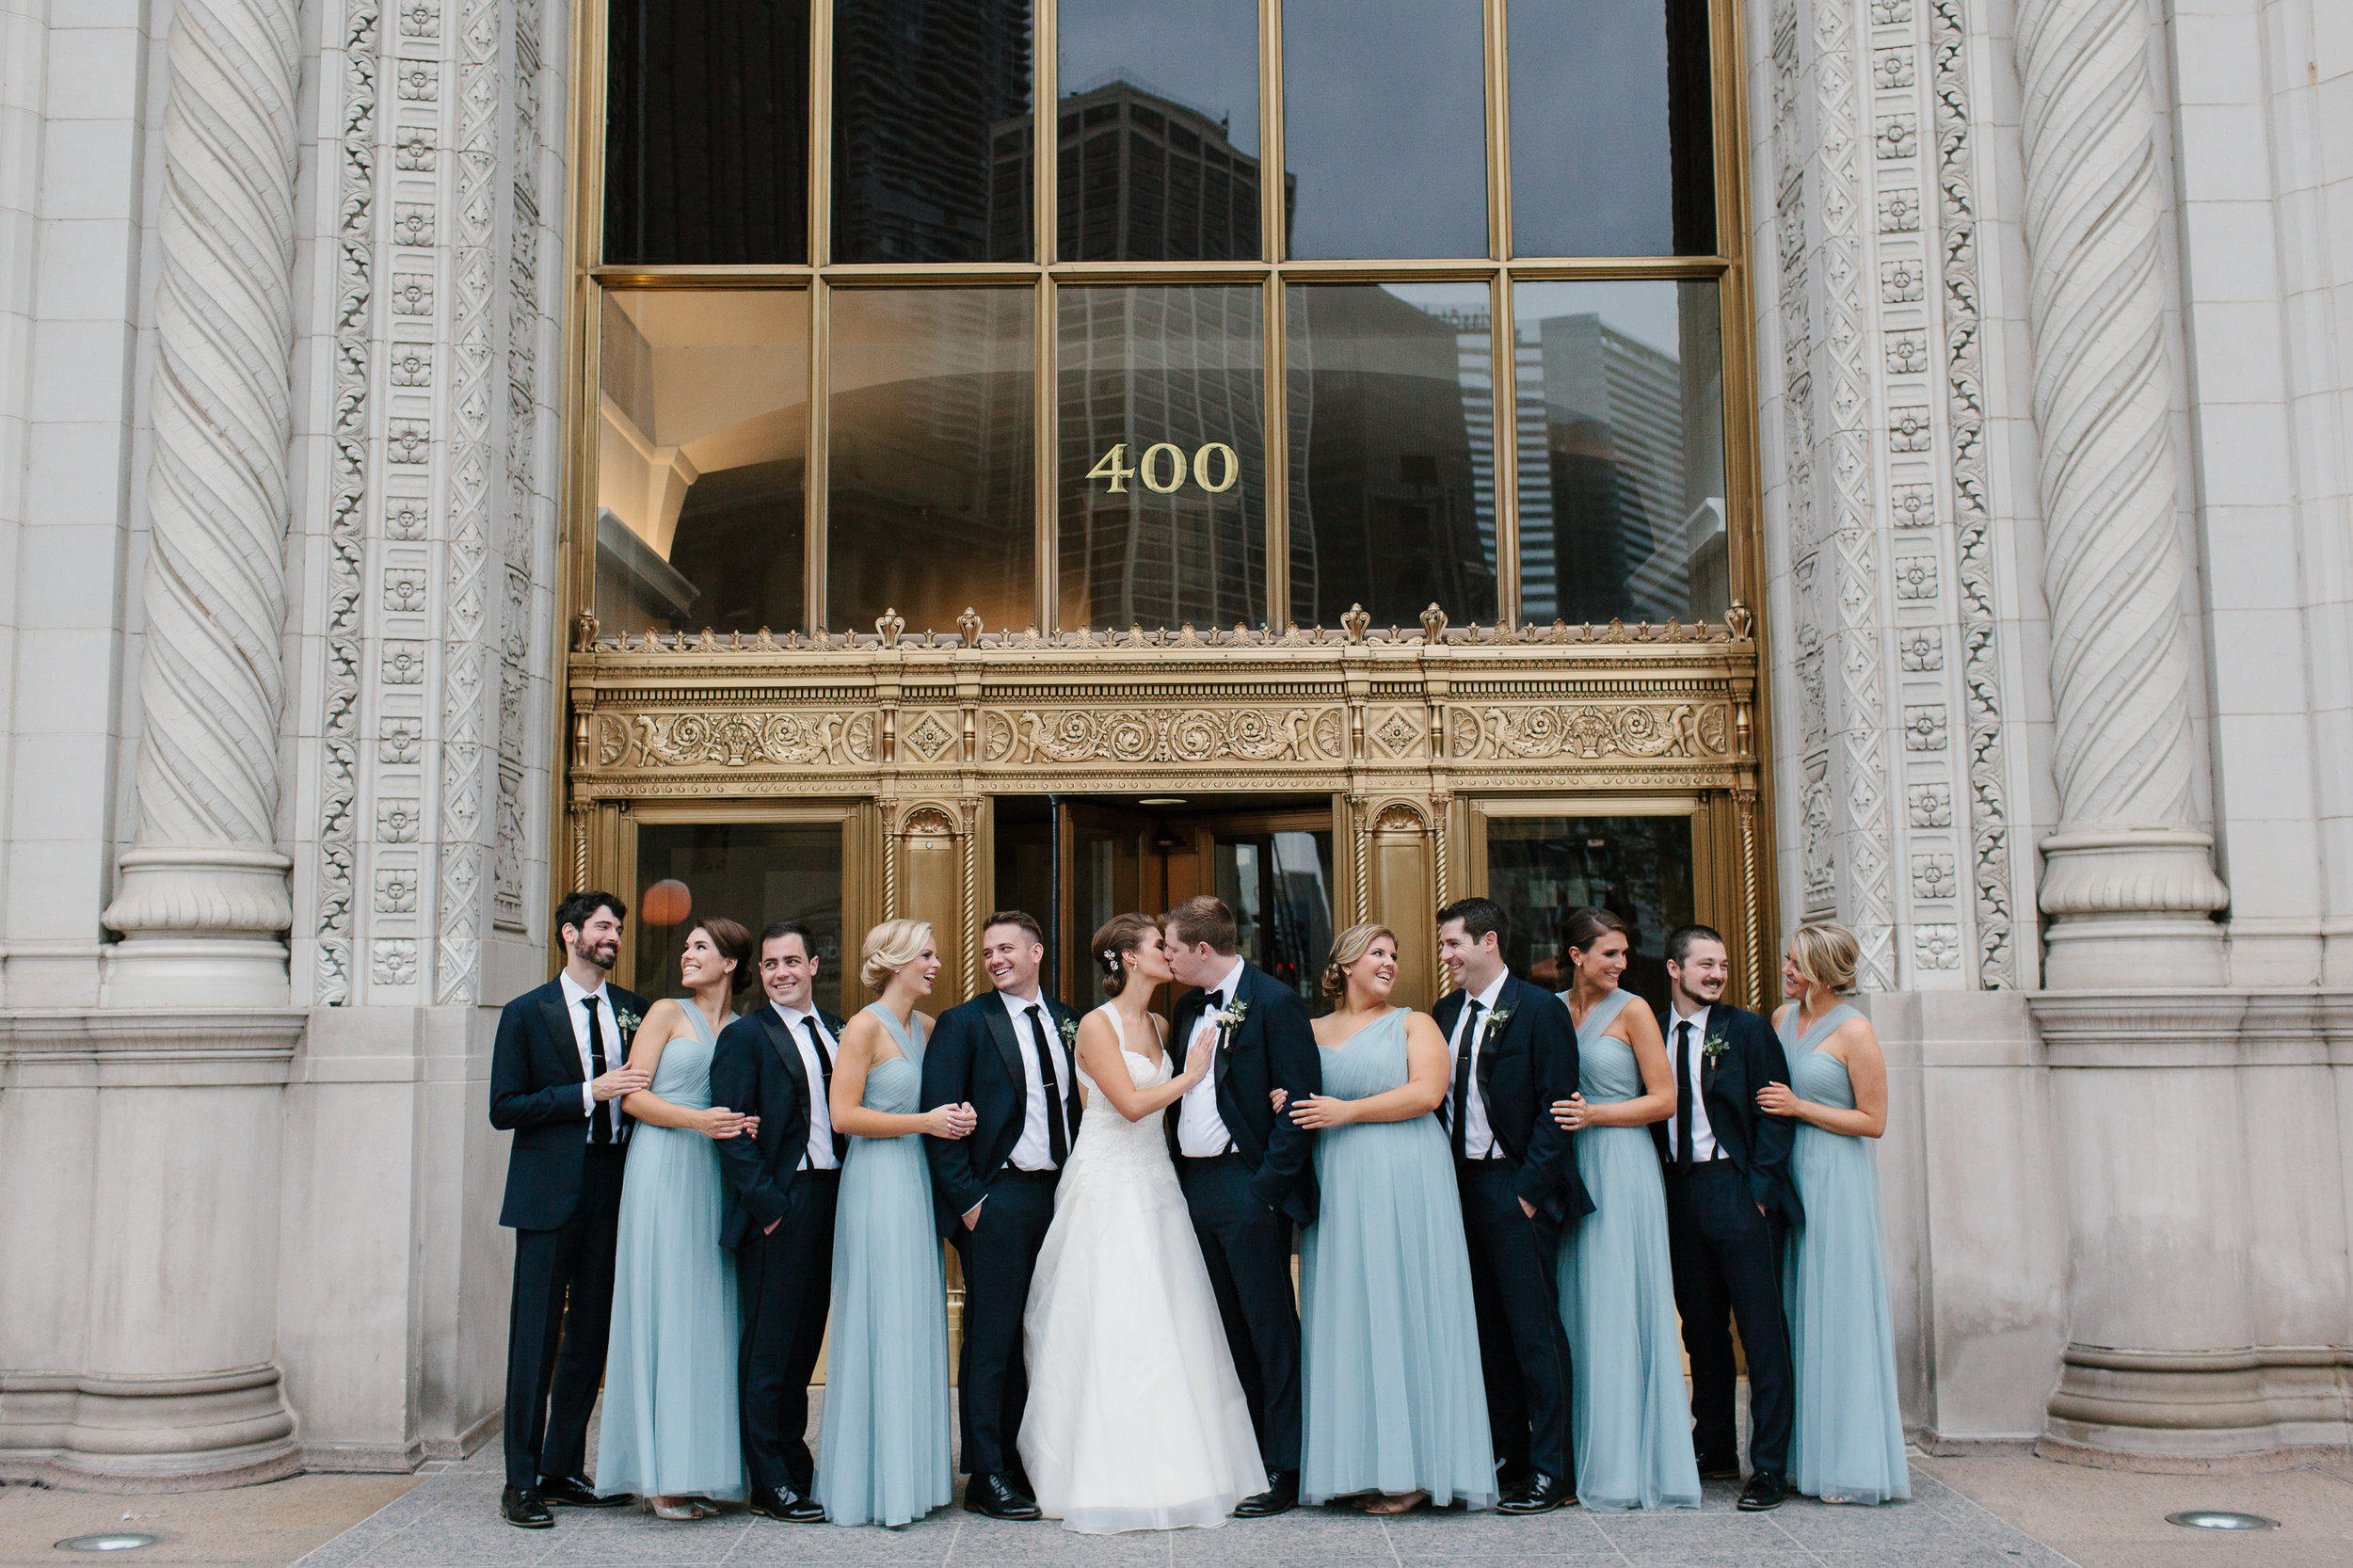 Nicodem Creative-Howley Wedding-Ivy Room Chicago-12.jpg